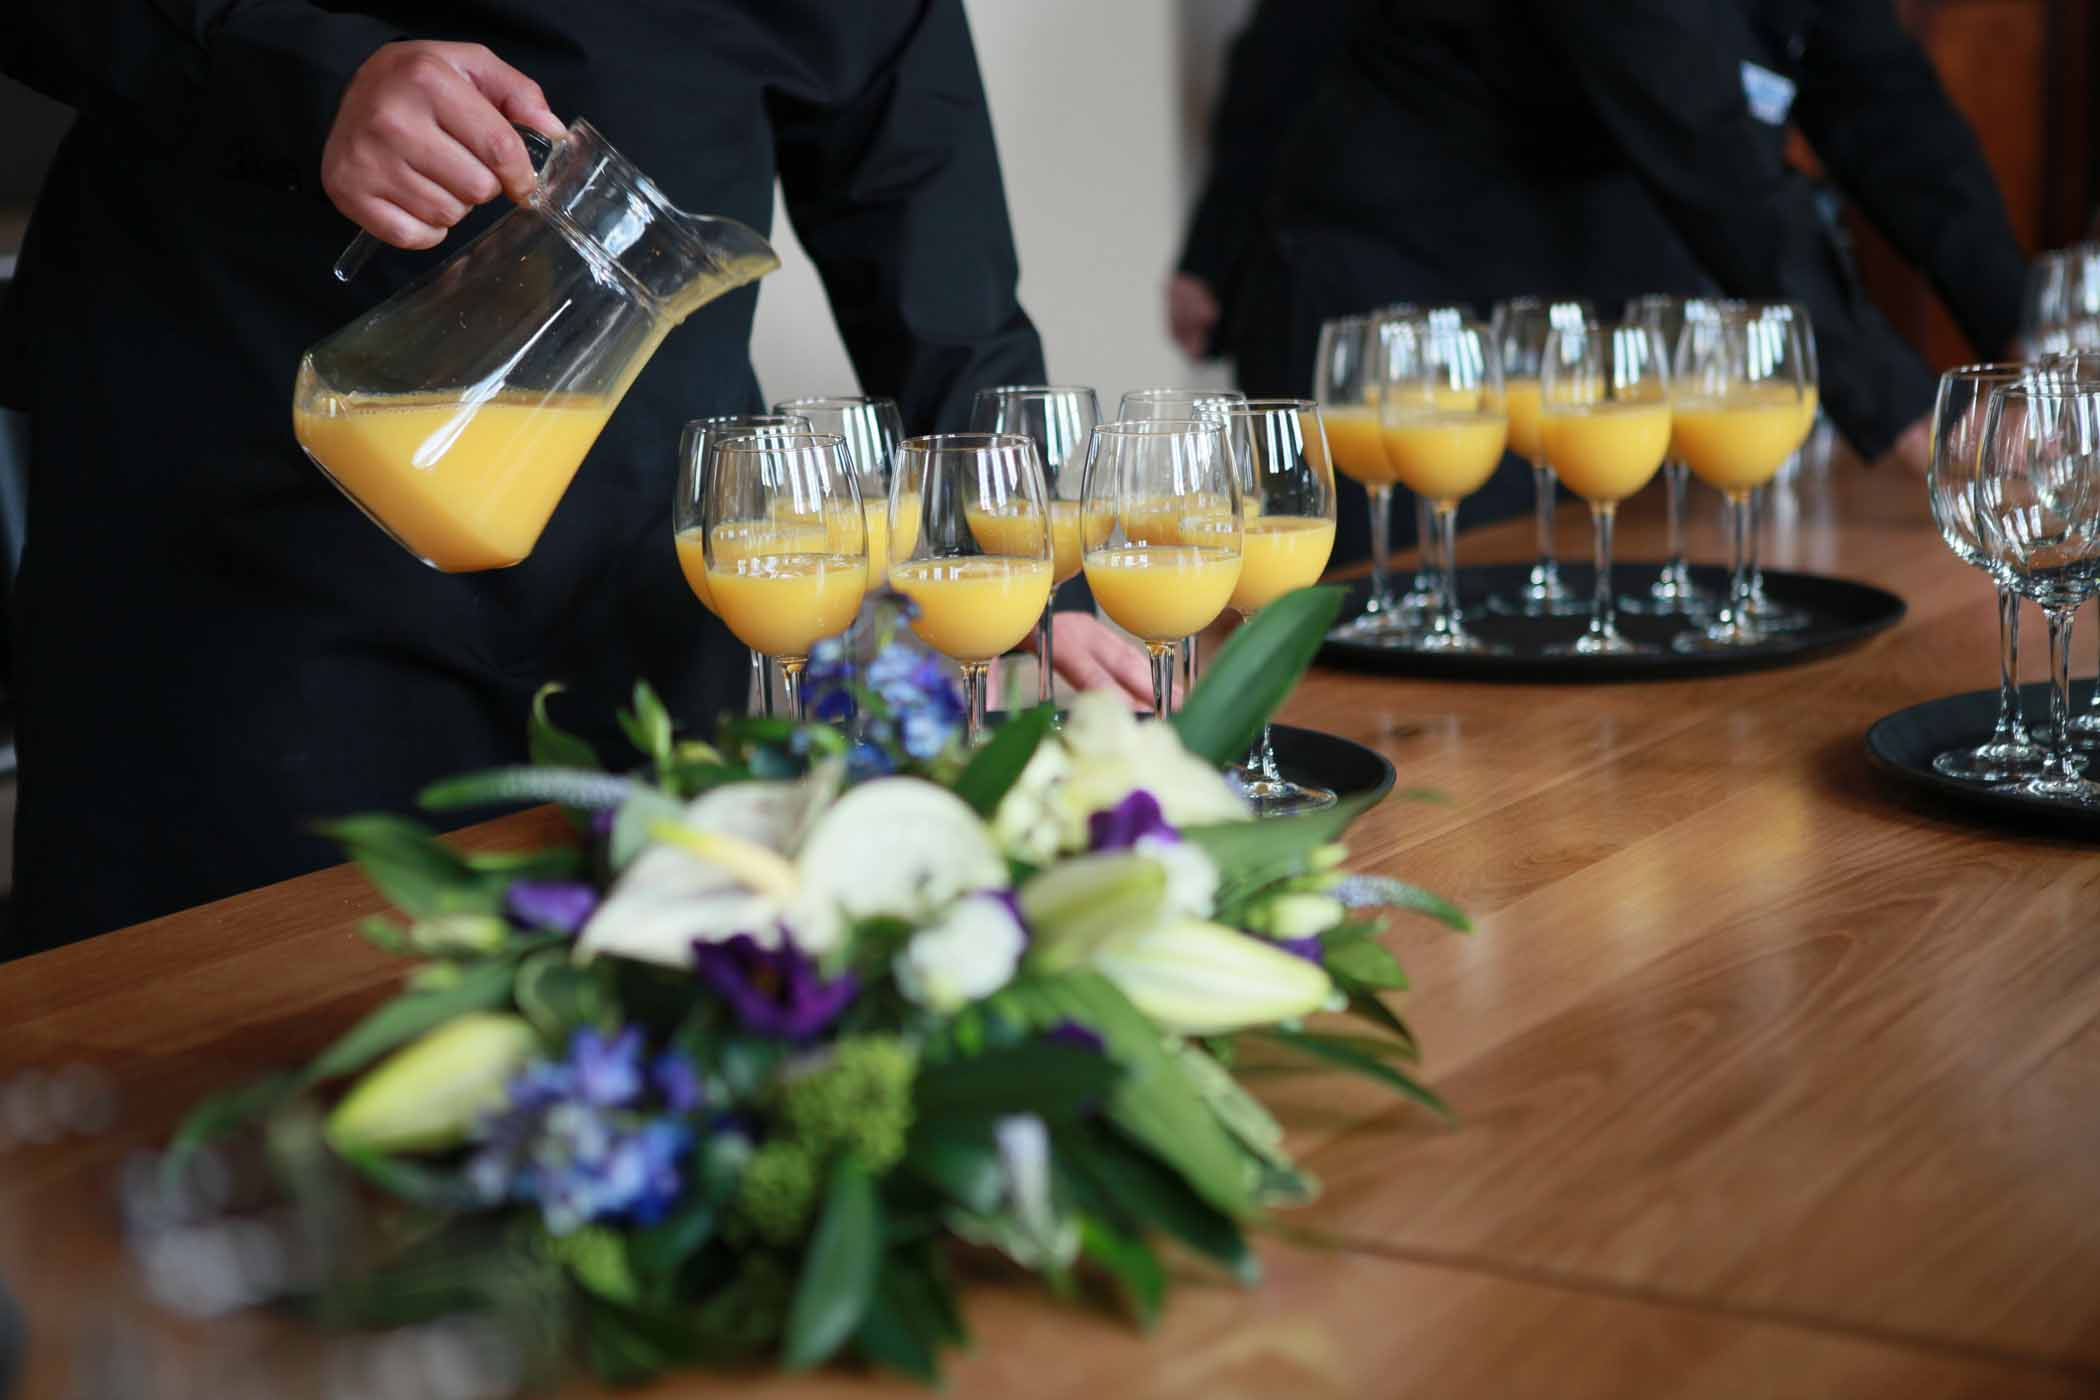 47 food and drink service the clink charity